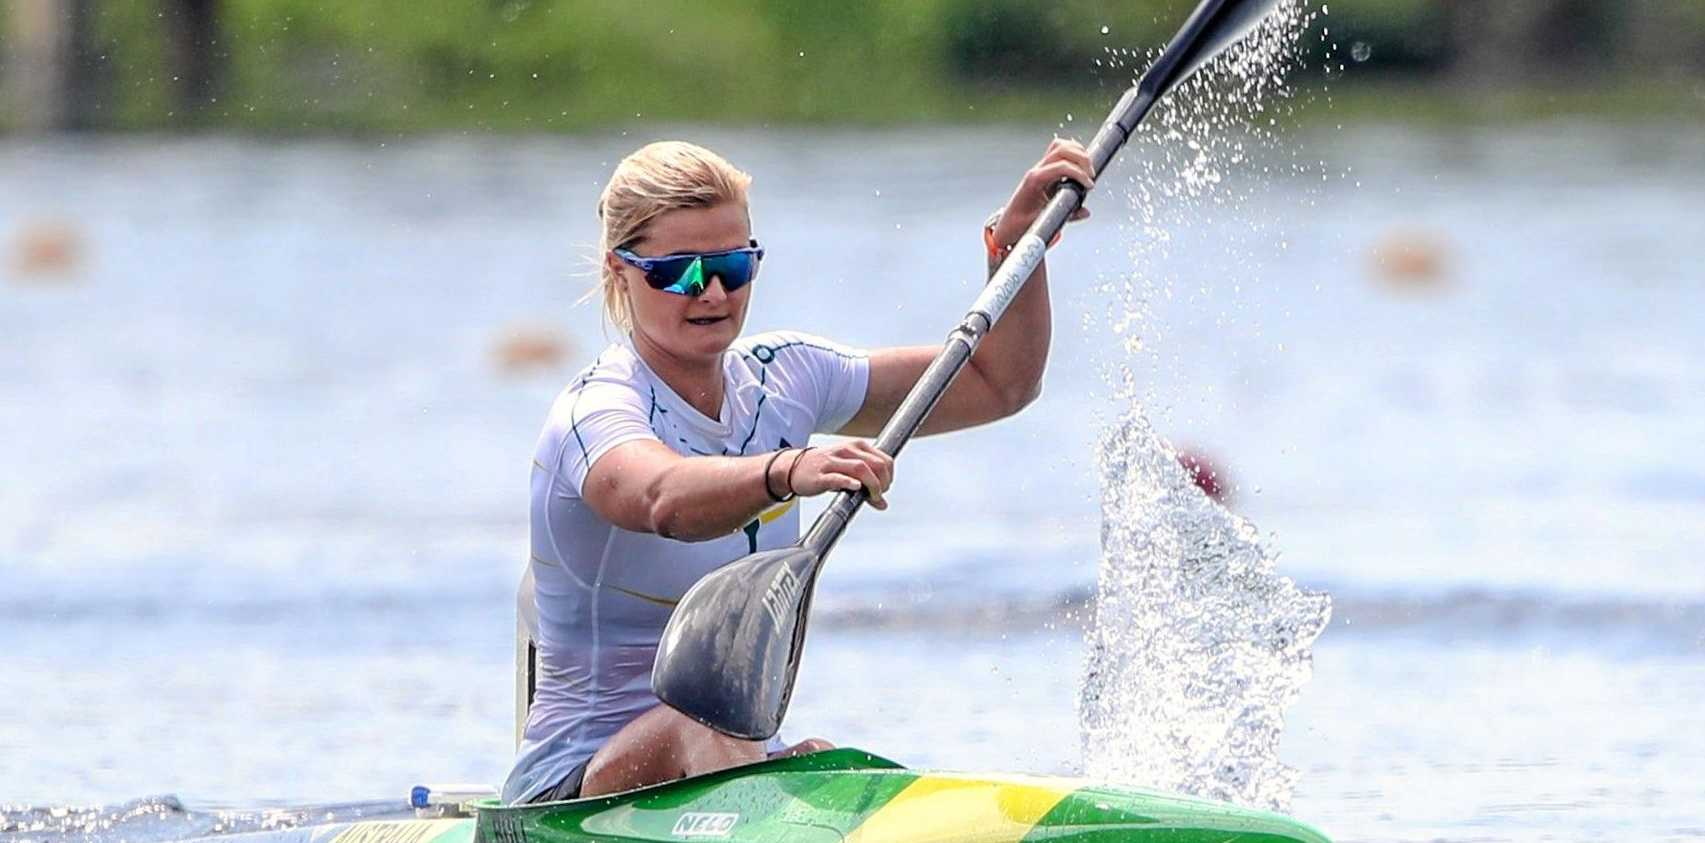 STAR: Alyssa Bull won gold in the K1 1000 at the Canoe Sprint World Cup II in Duisburg, Germany.